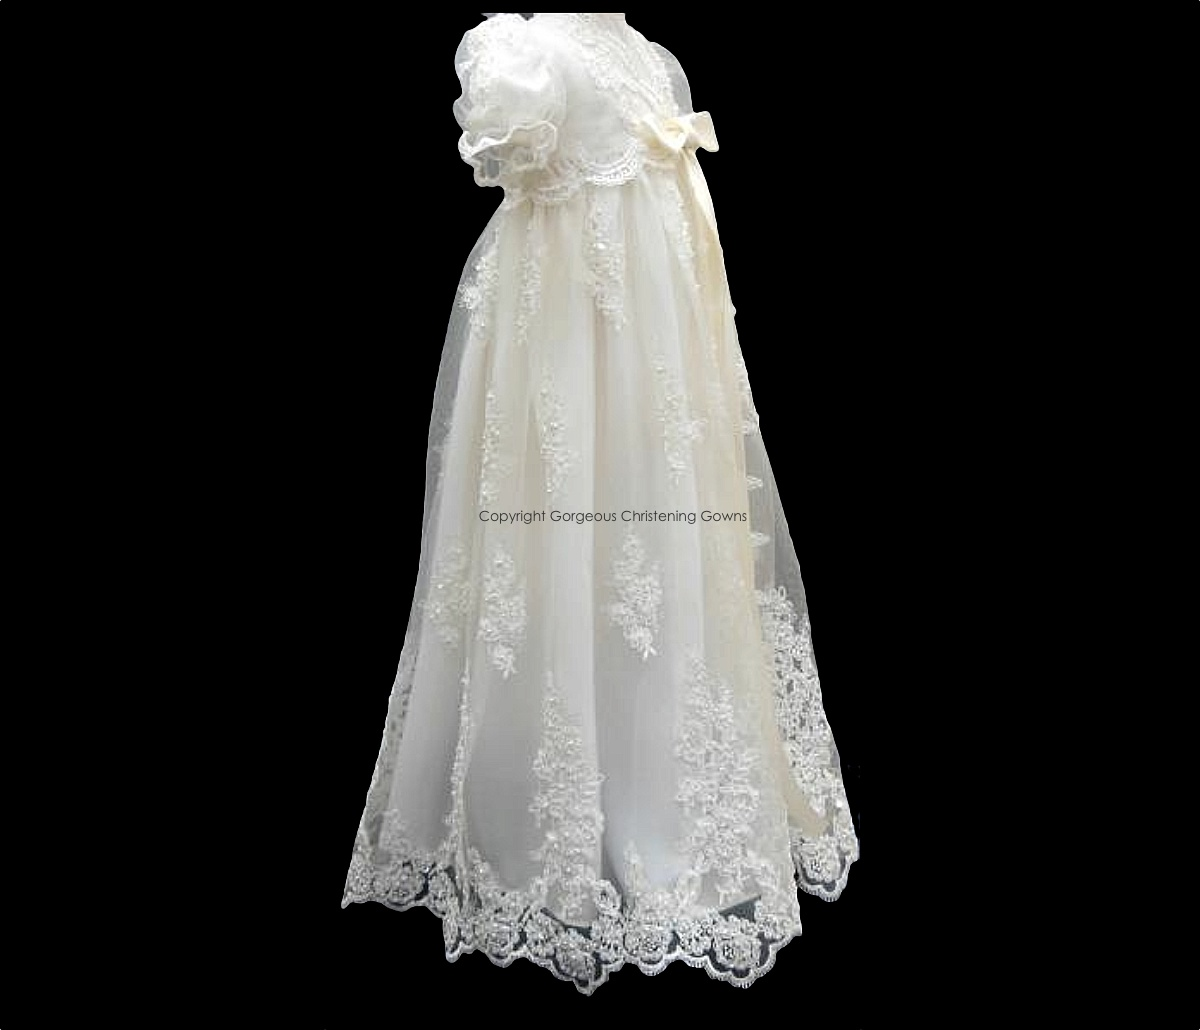 Charlotte Side View - Gorgeous Christening Gowns